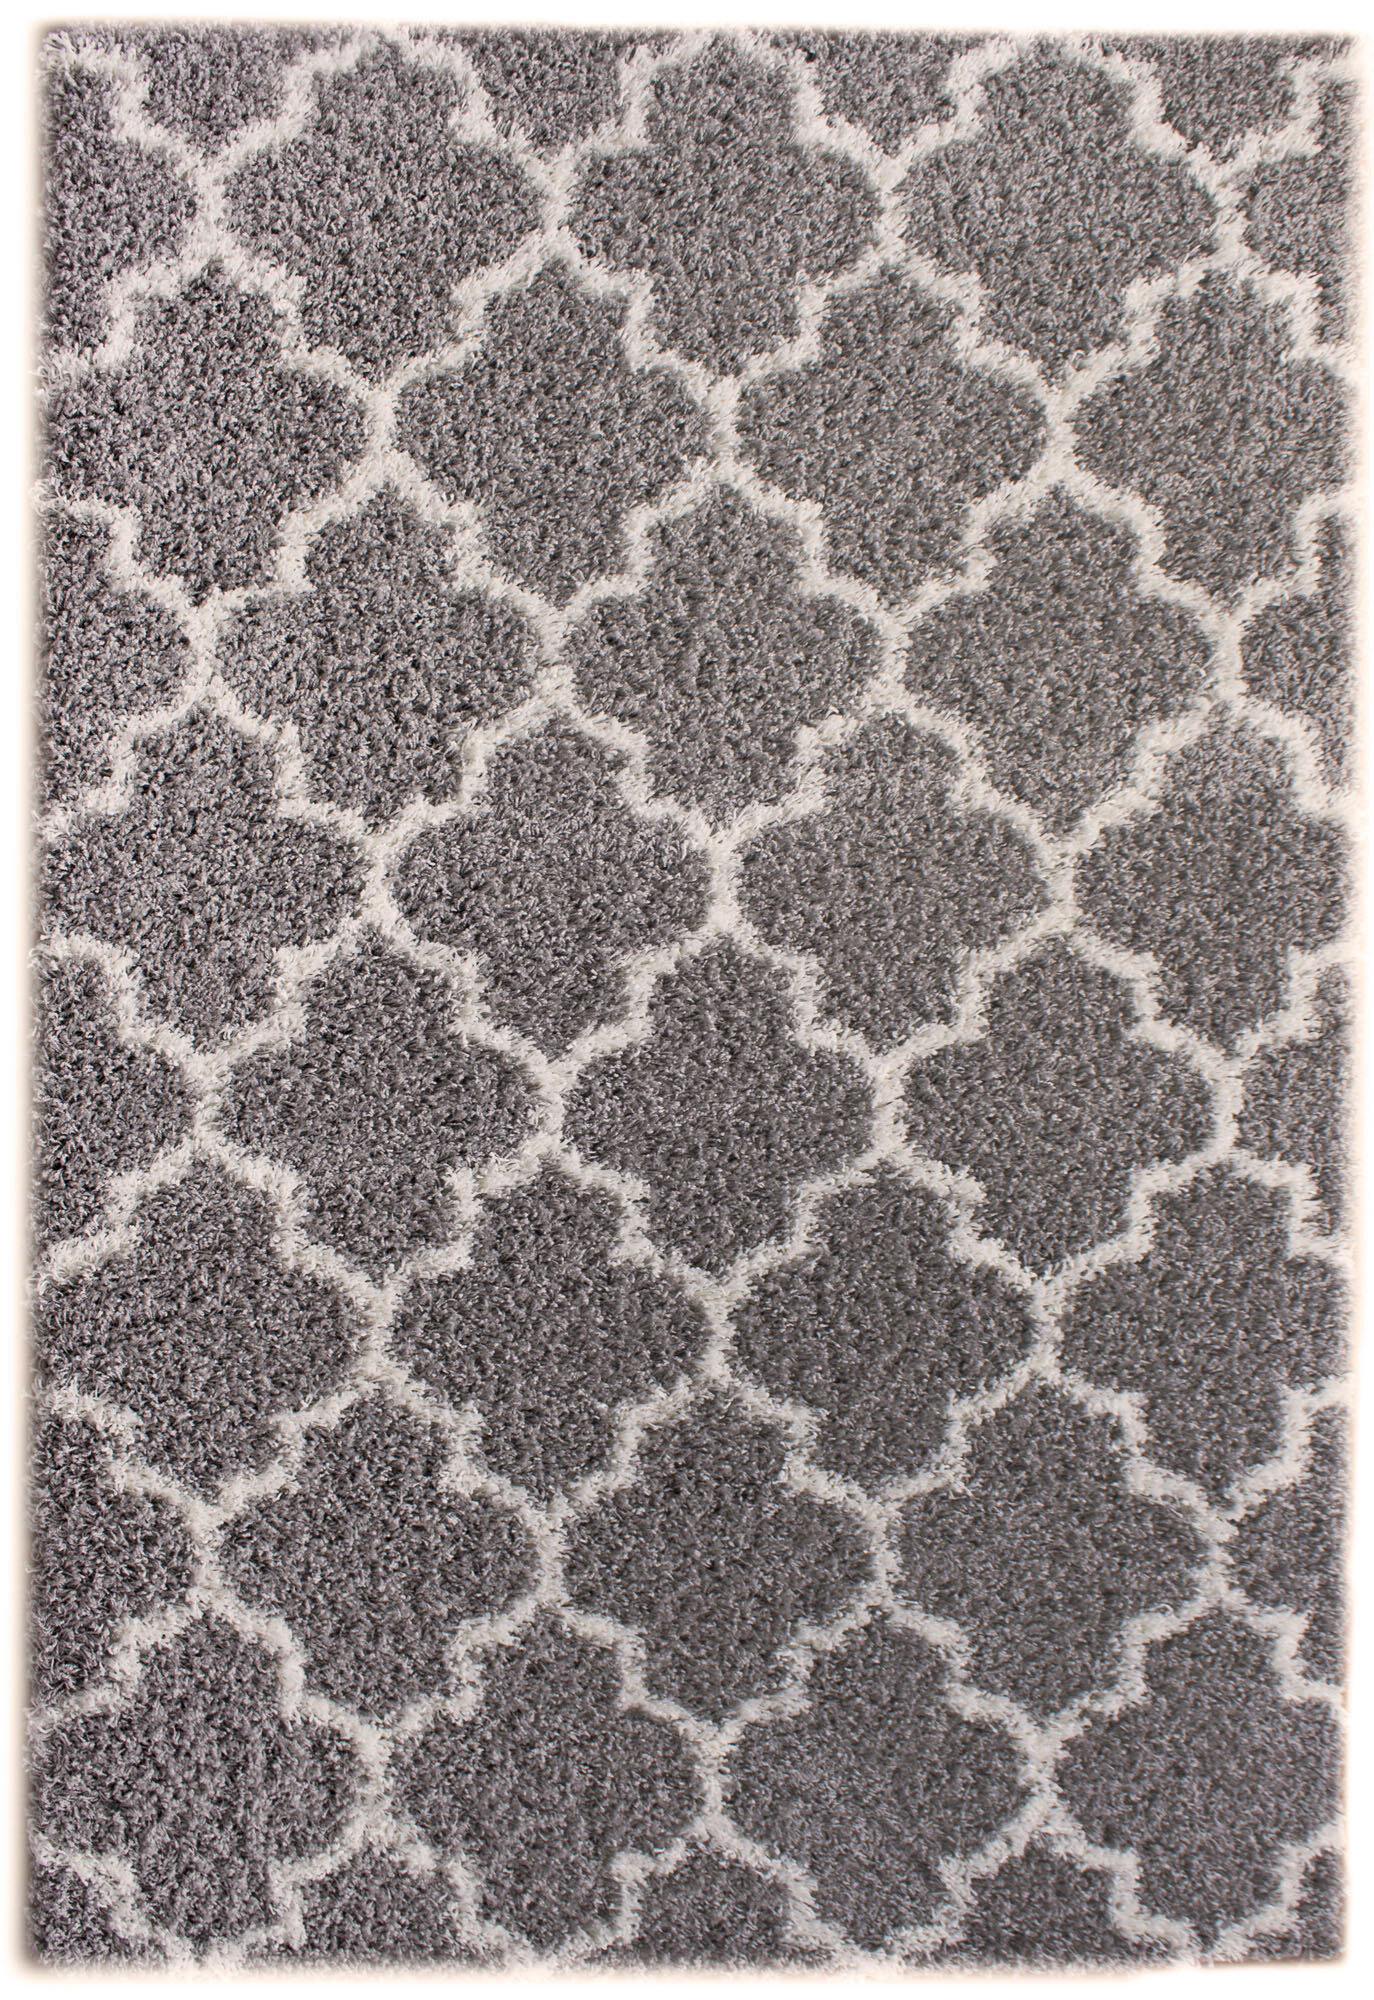 somerset area white grey and home elegant geometric gray rug rugs photos improvement luxury of